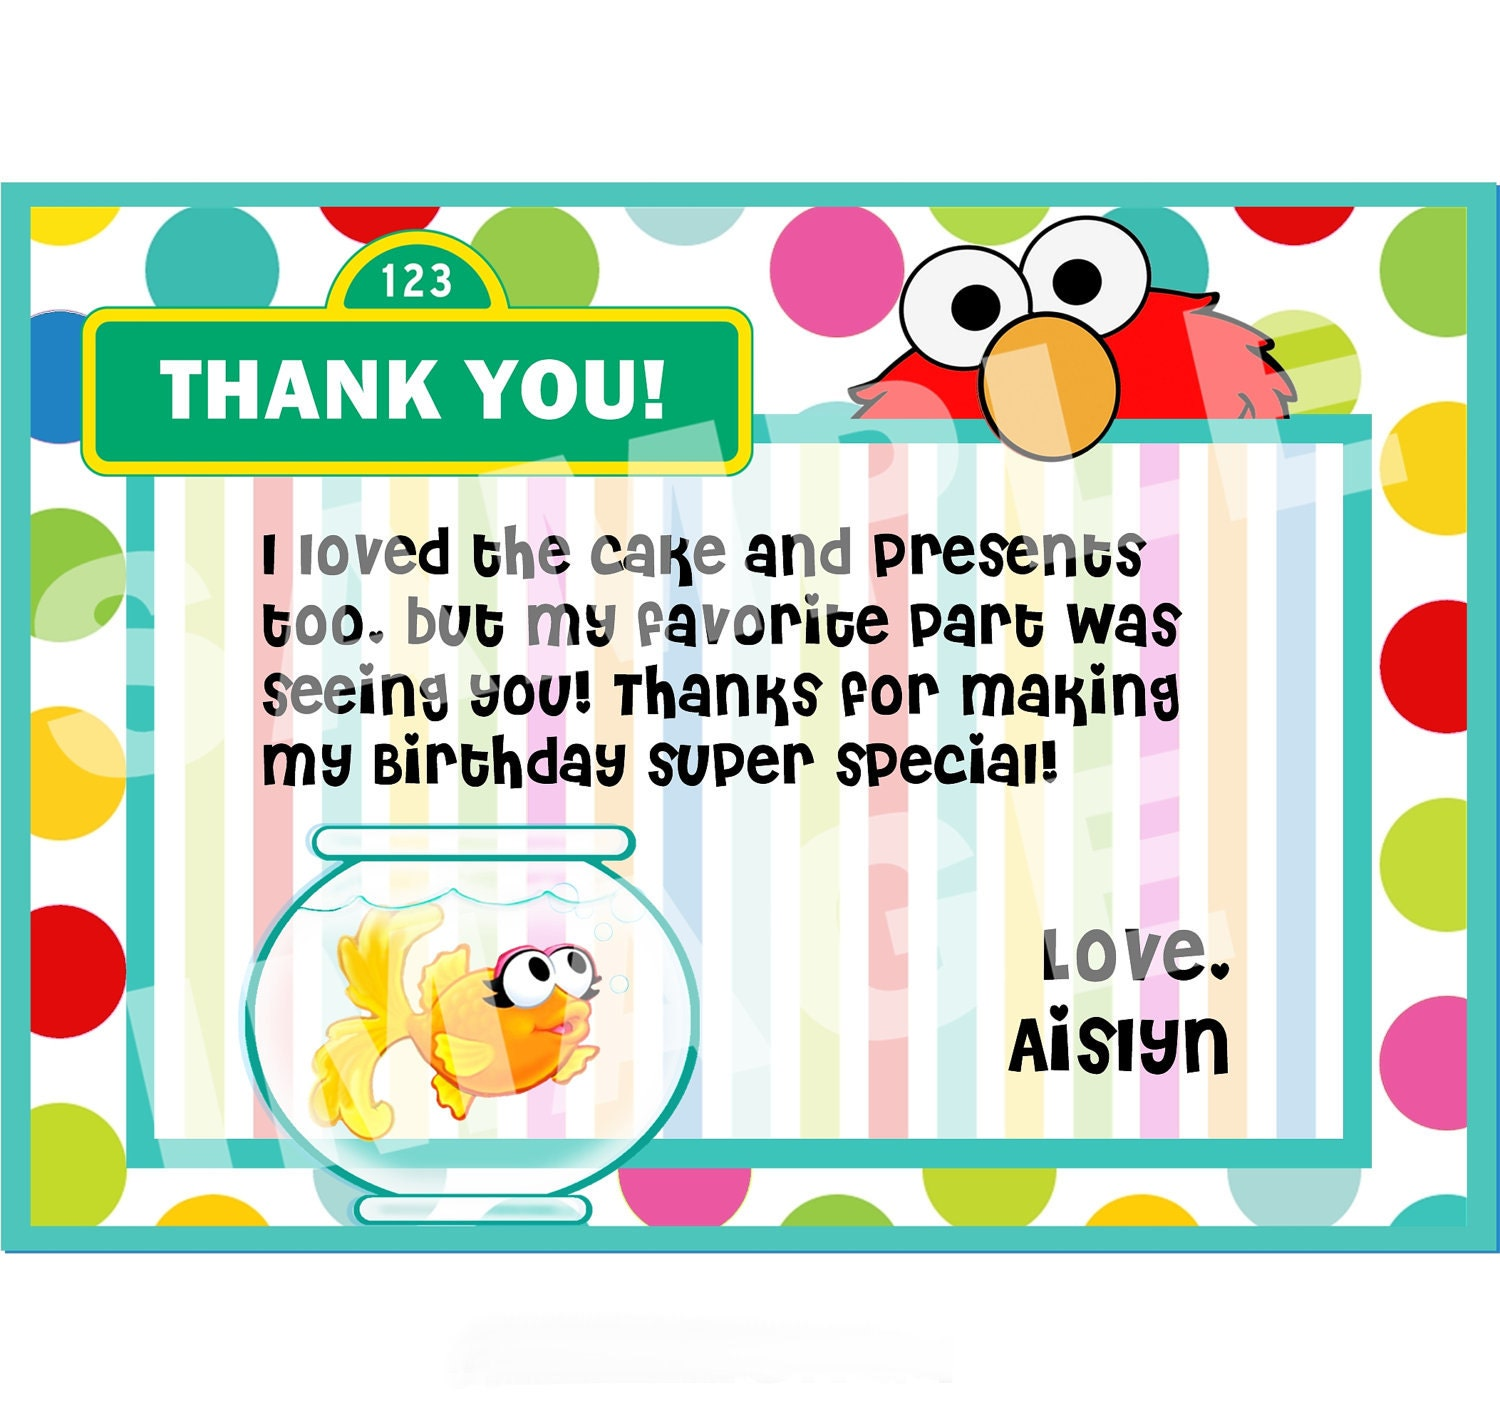 Birthday Party Thank You Cards graphic designer cover letter